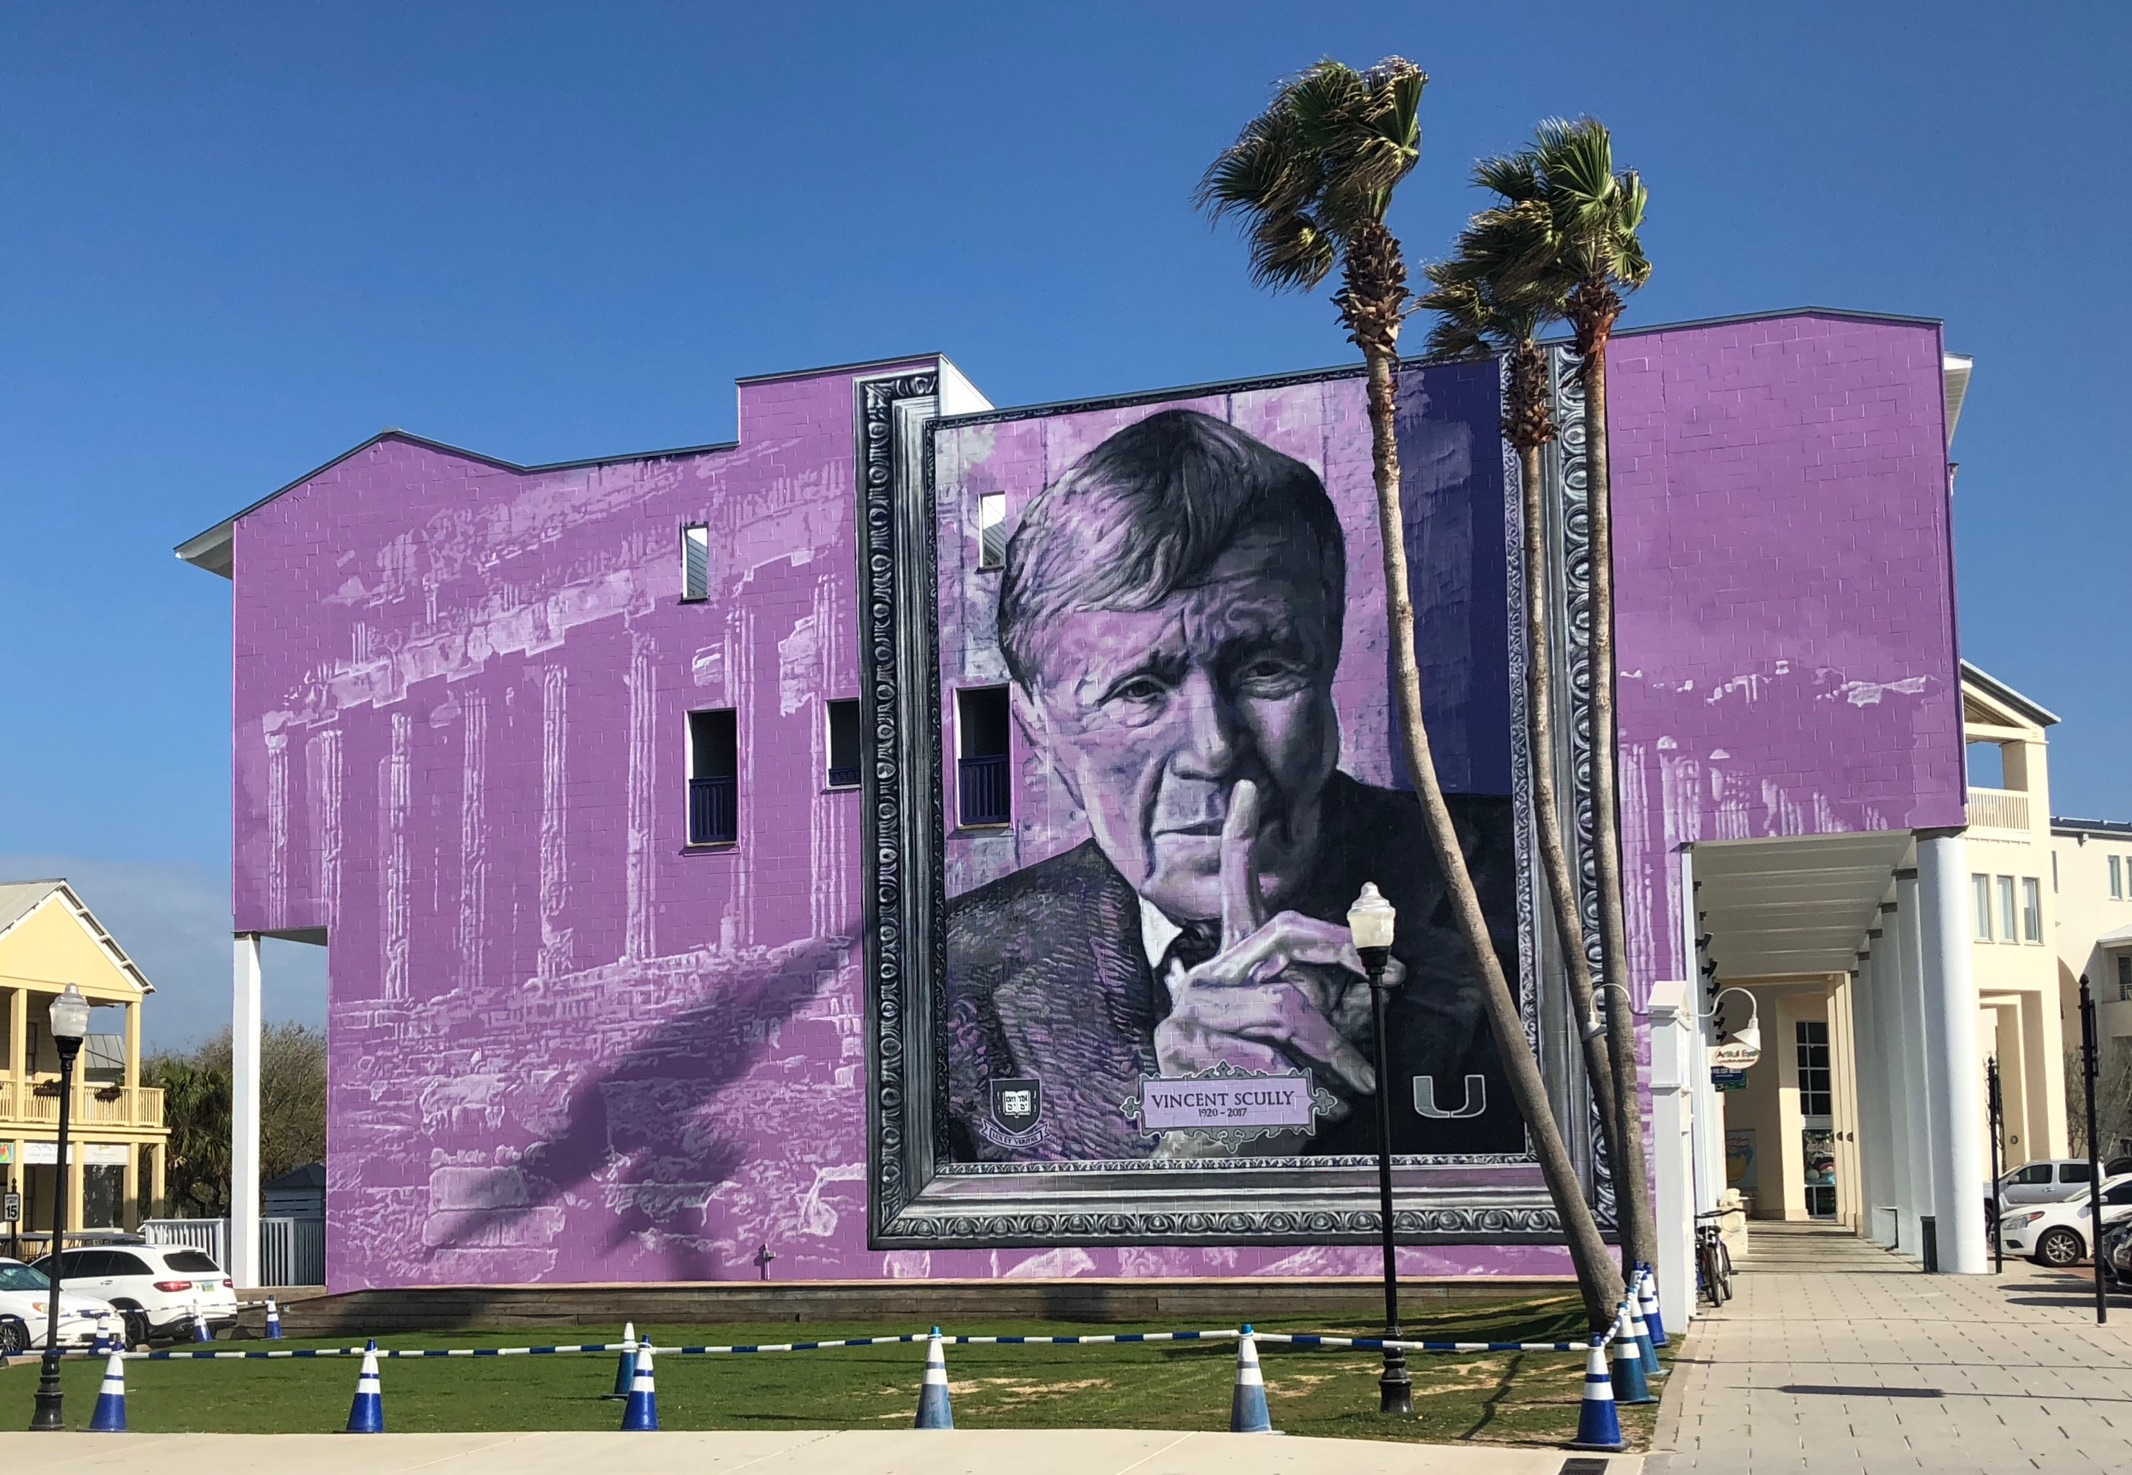 Vincent Scully Mural in Seaside, Florida. (Courtesy Michael Pisacane)